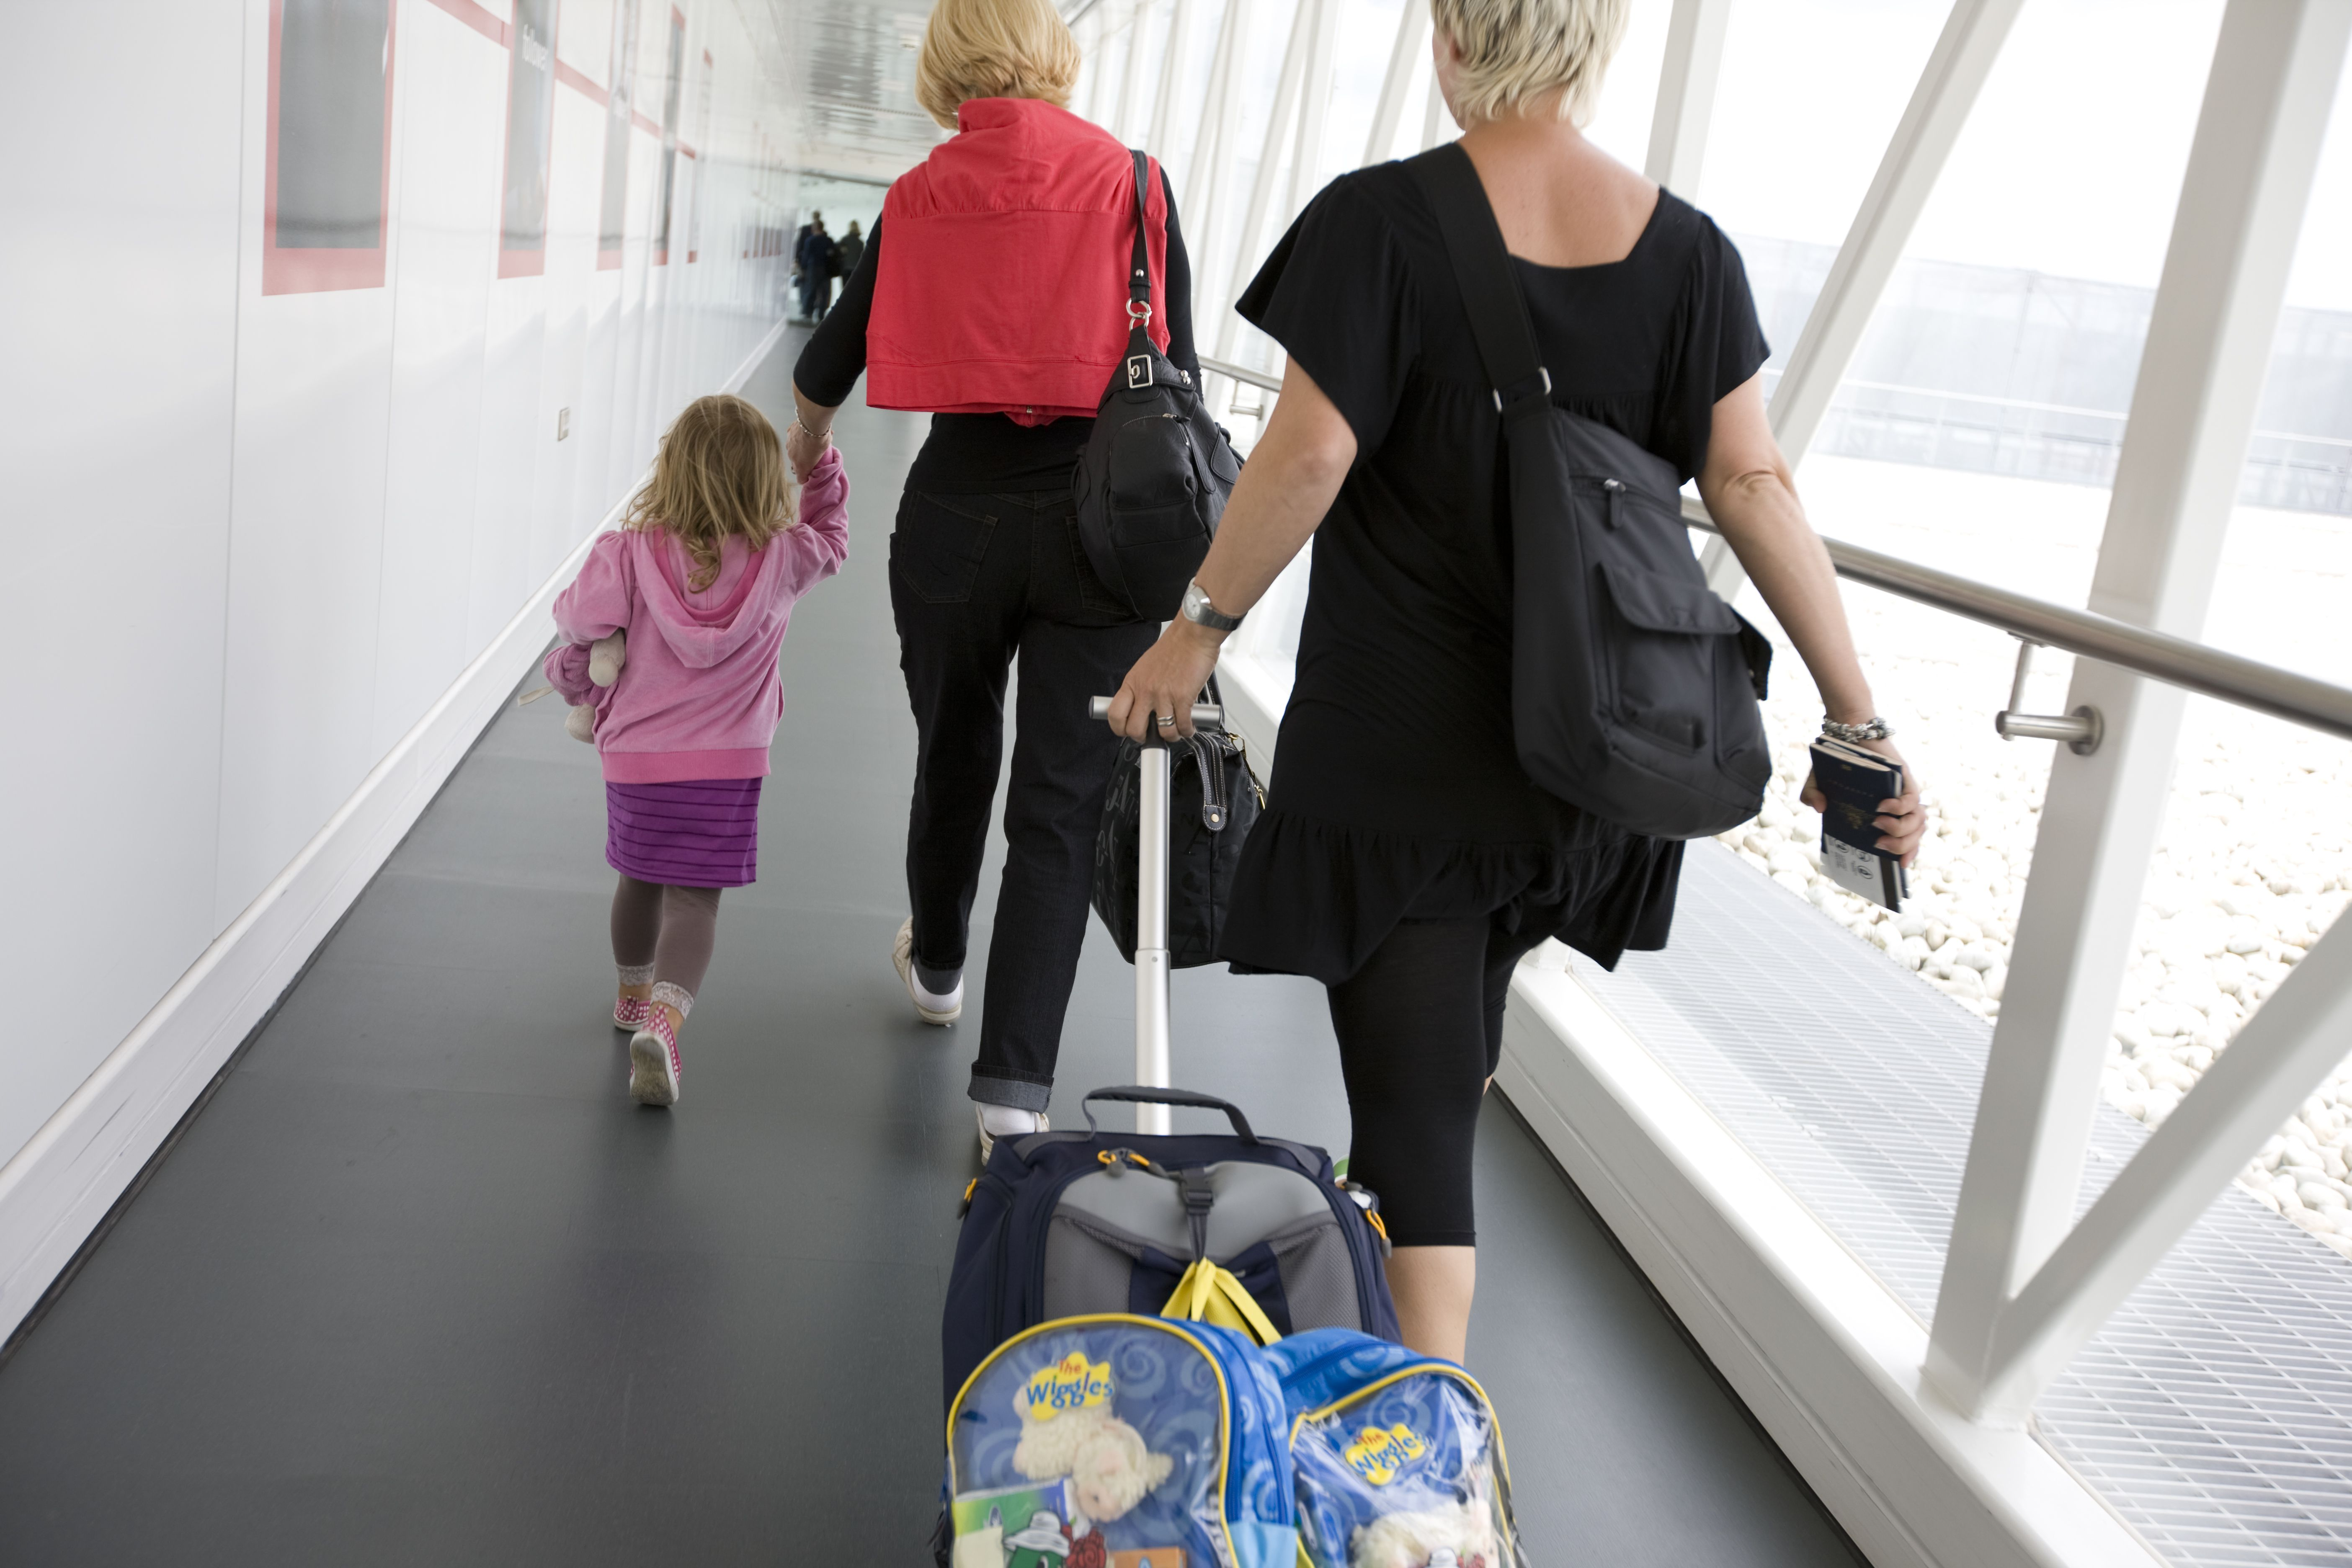 Two women and child walking along gangway to board airplane